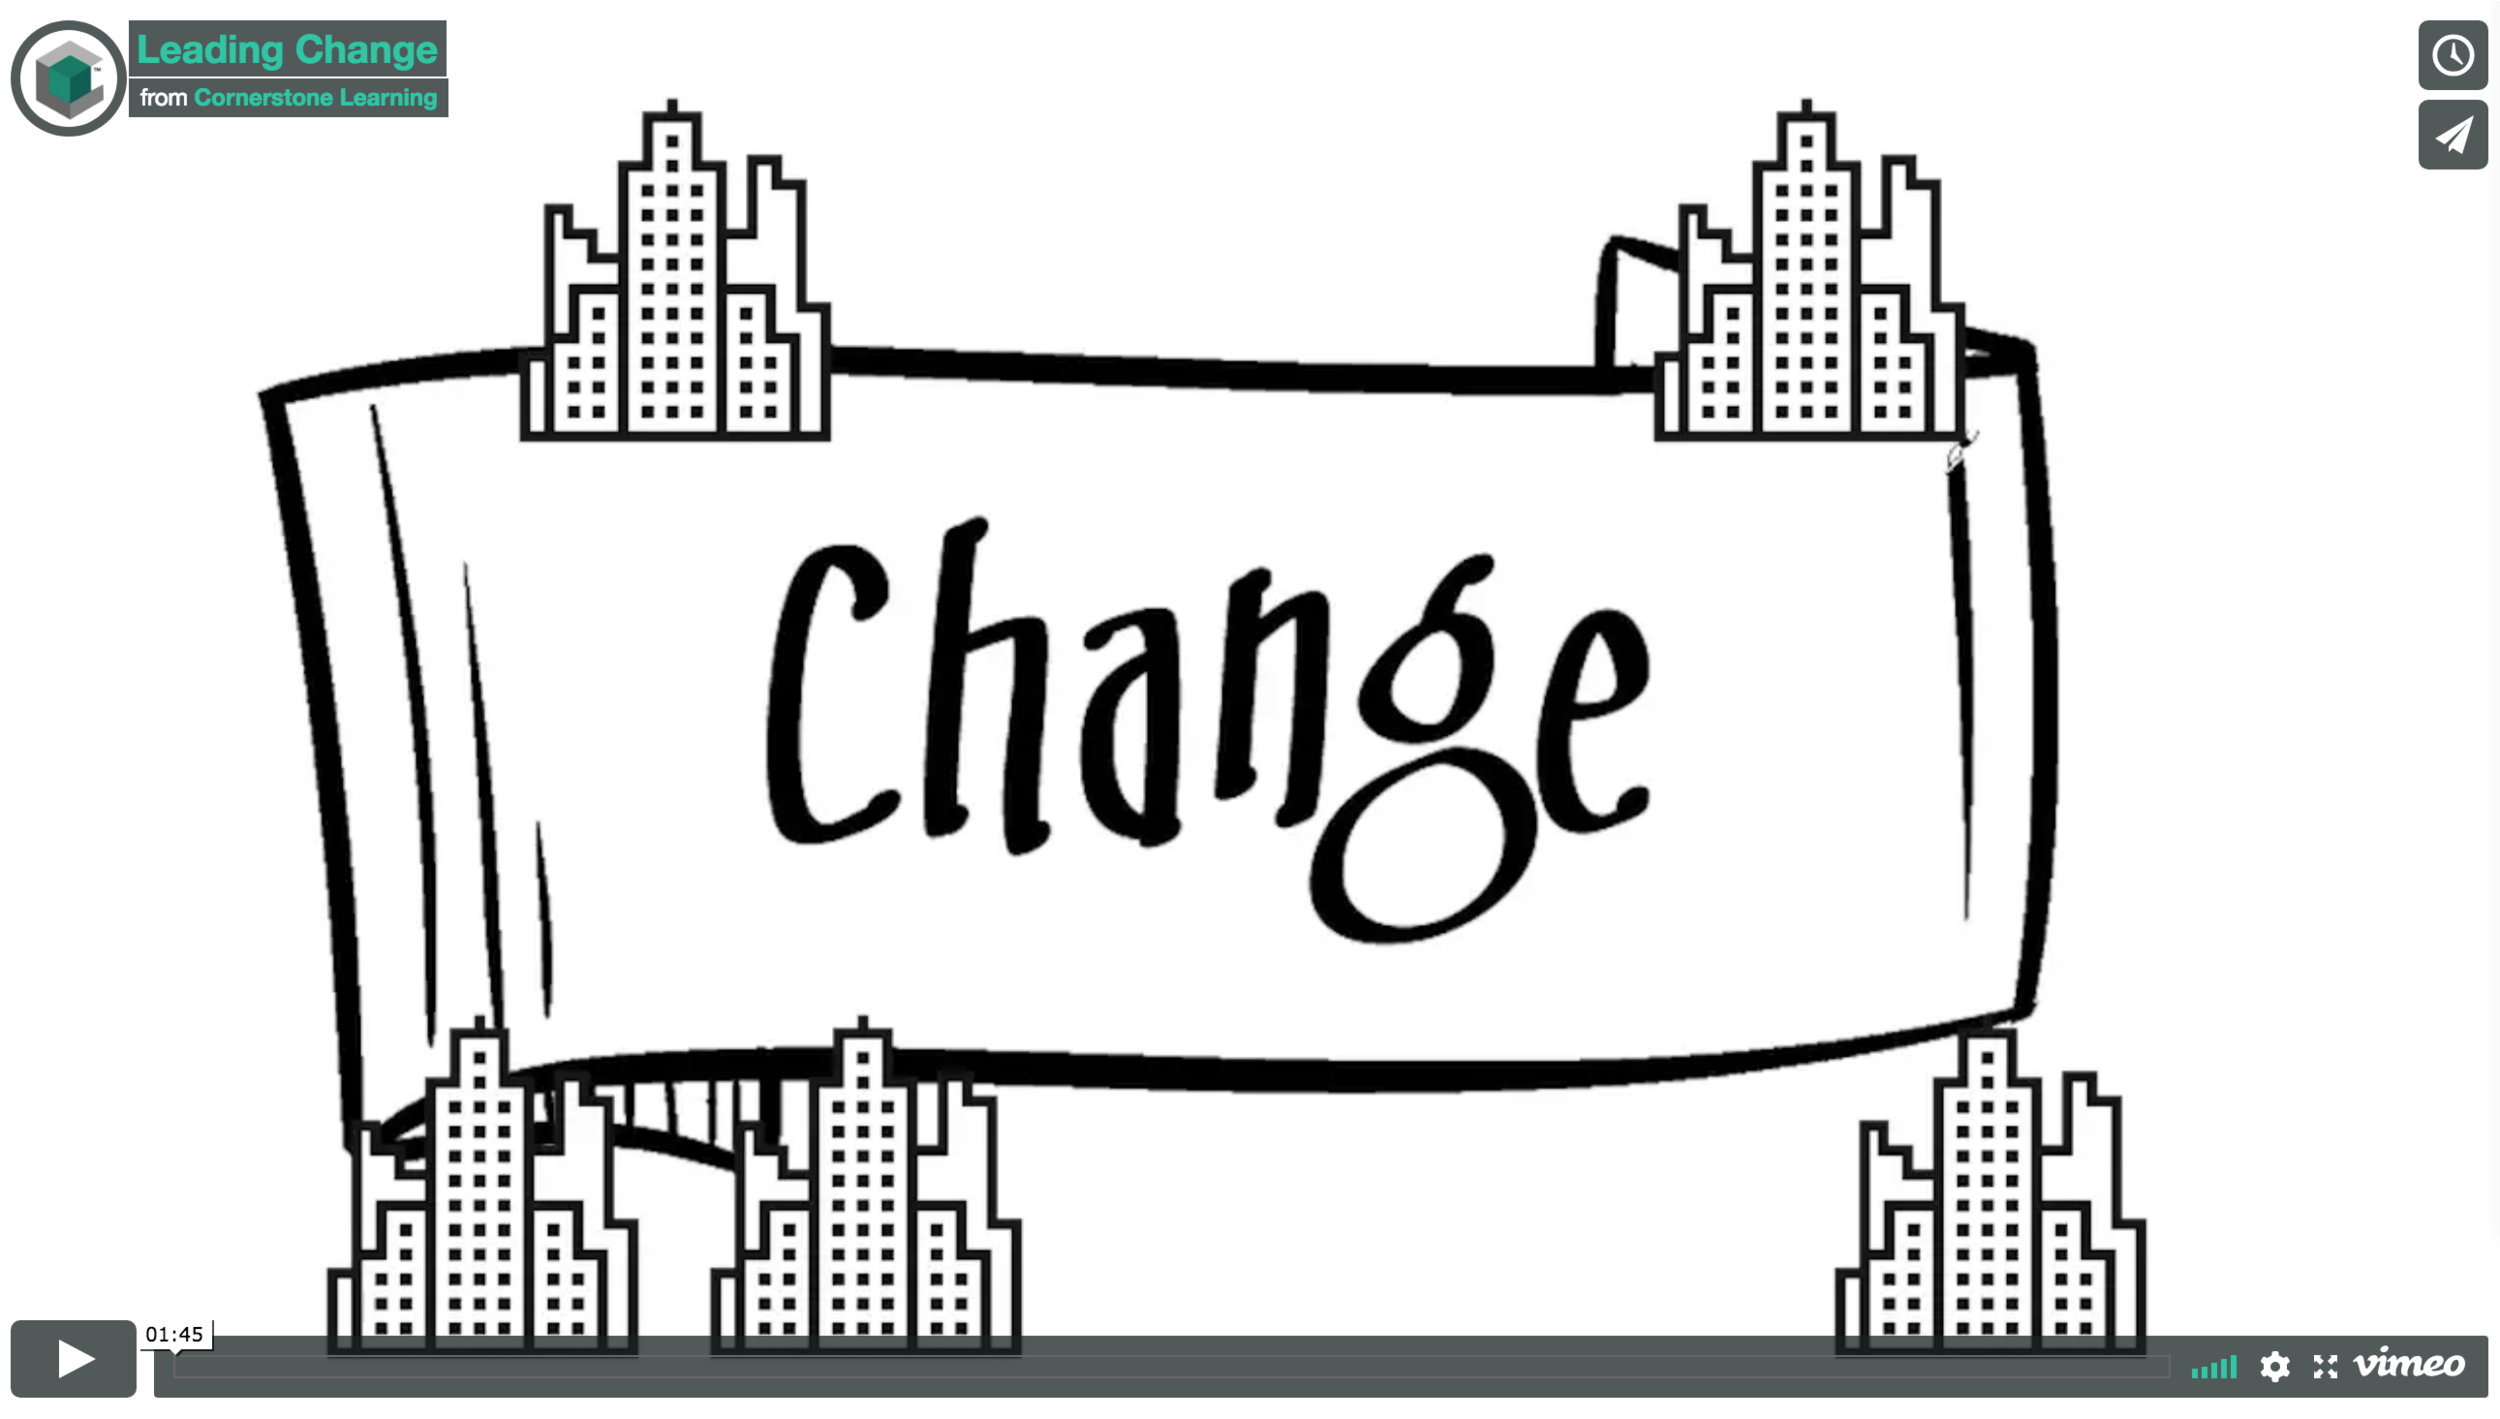 Leading Change Video